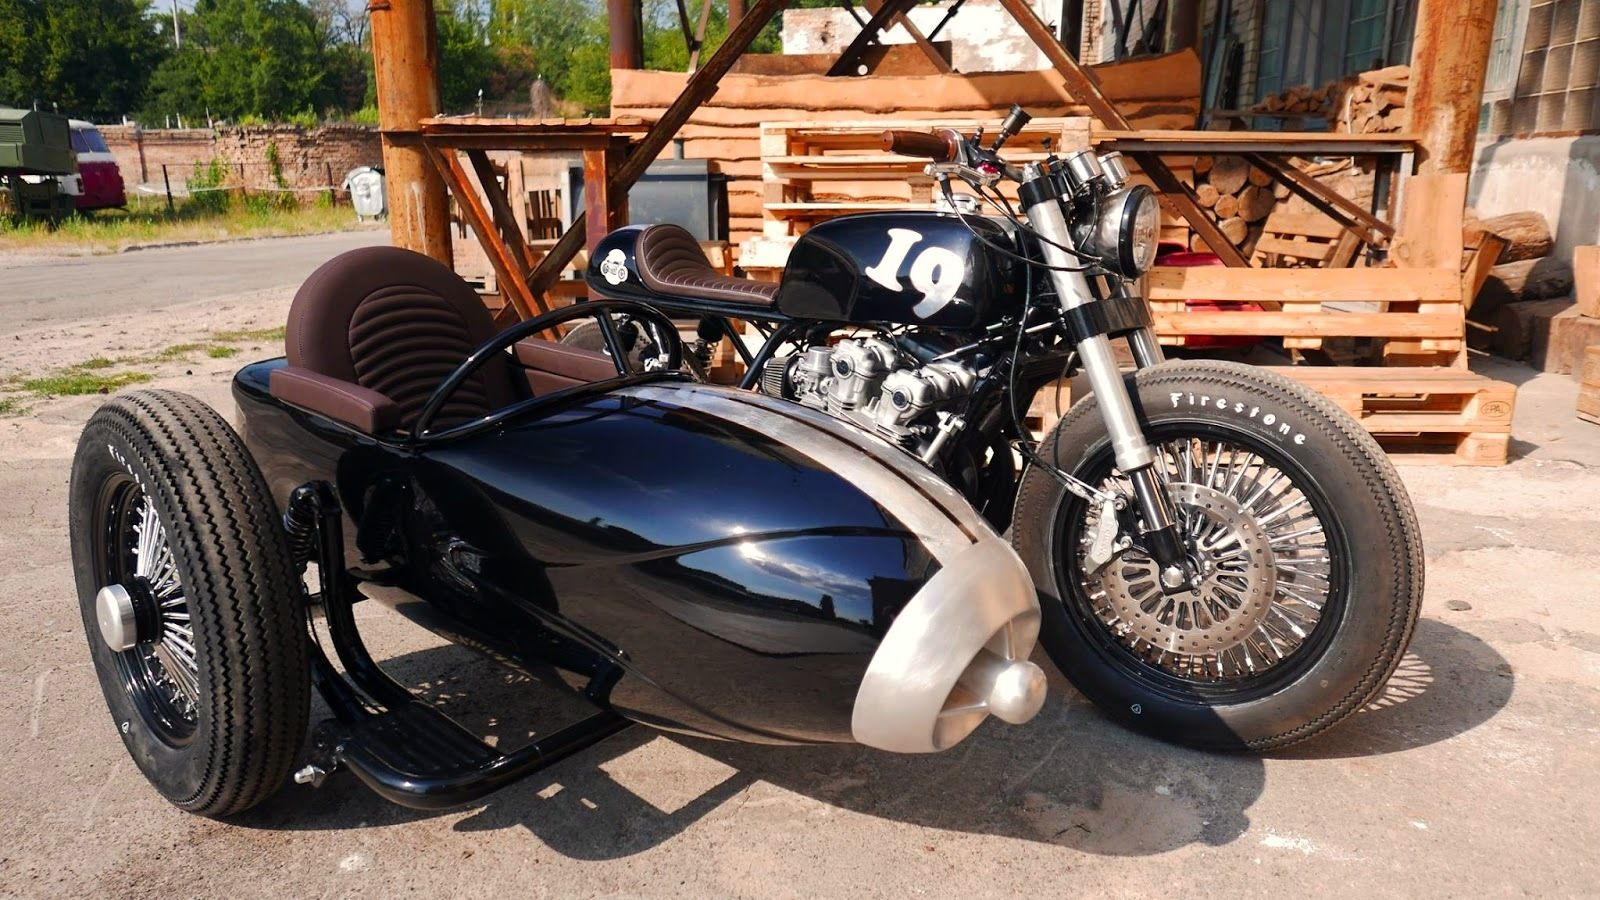 Cafe Racer - Engines, Fuel & Pions | SIDECAR | Pinterest ...